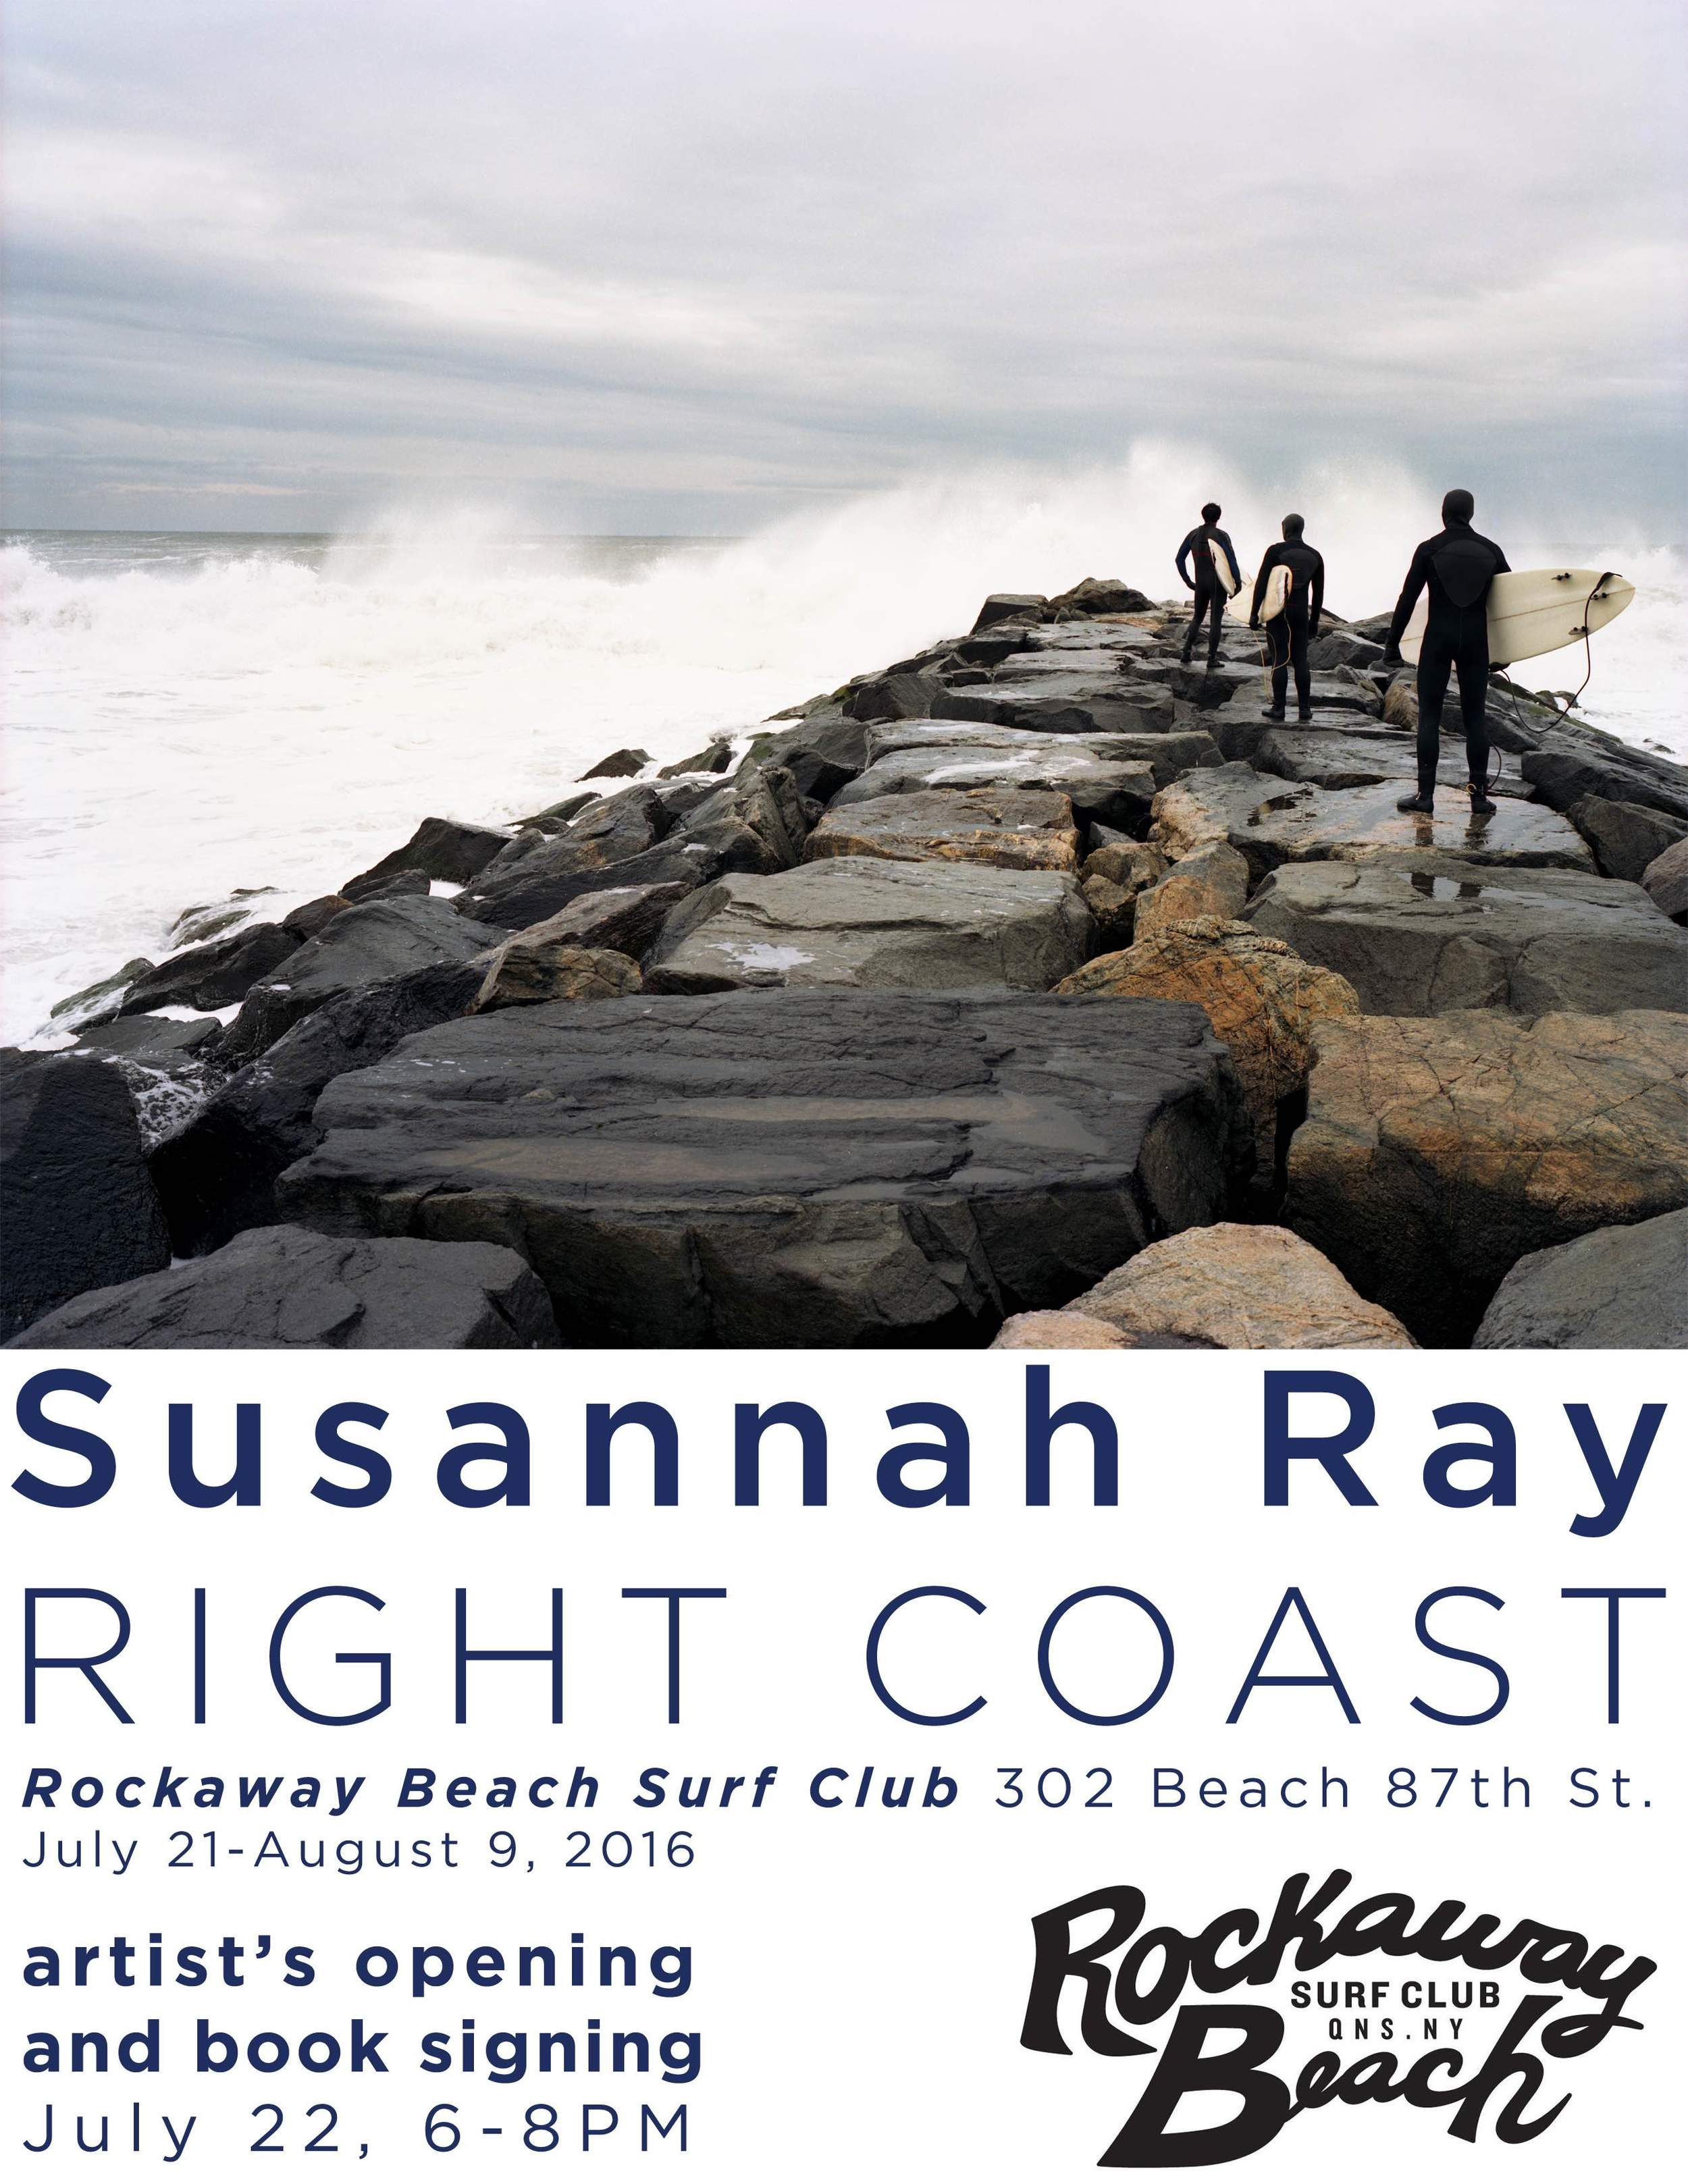 RBSC Susannah Ray Exhibition 2016